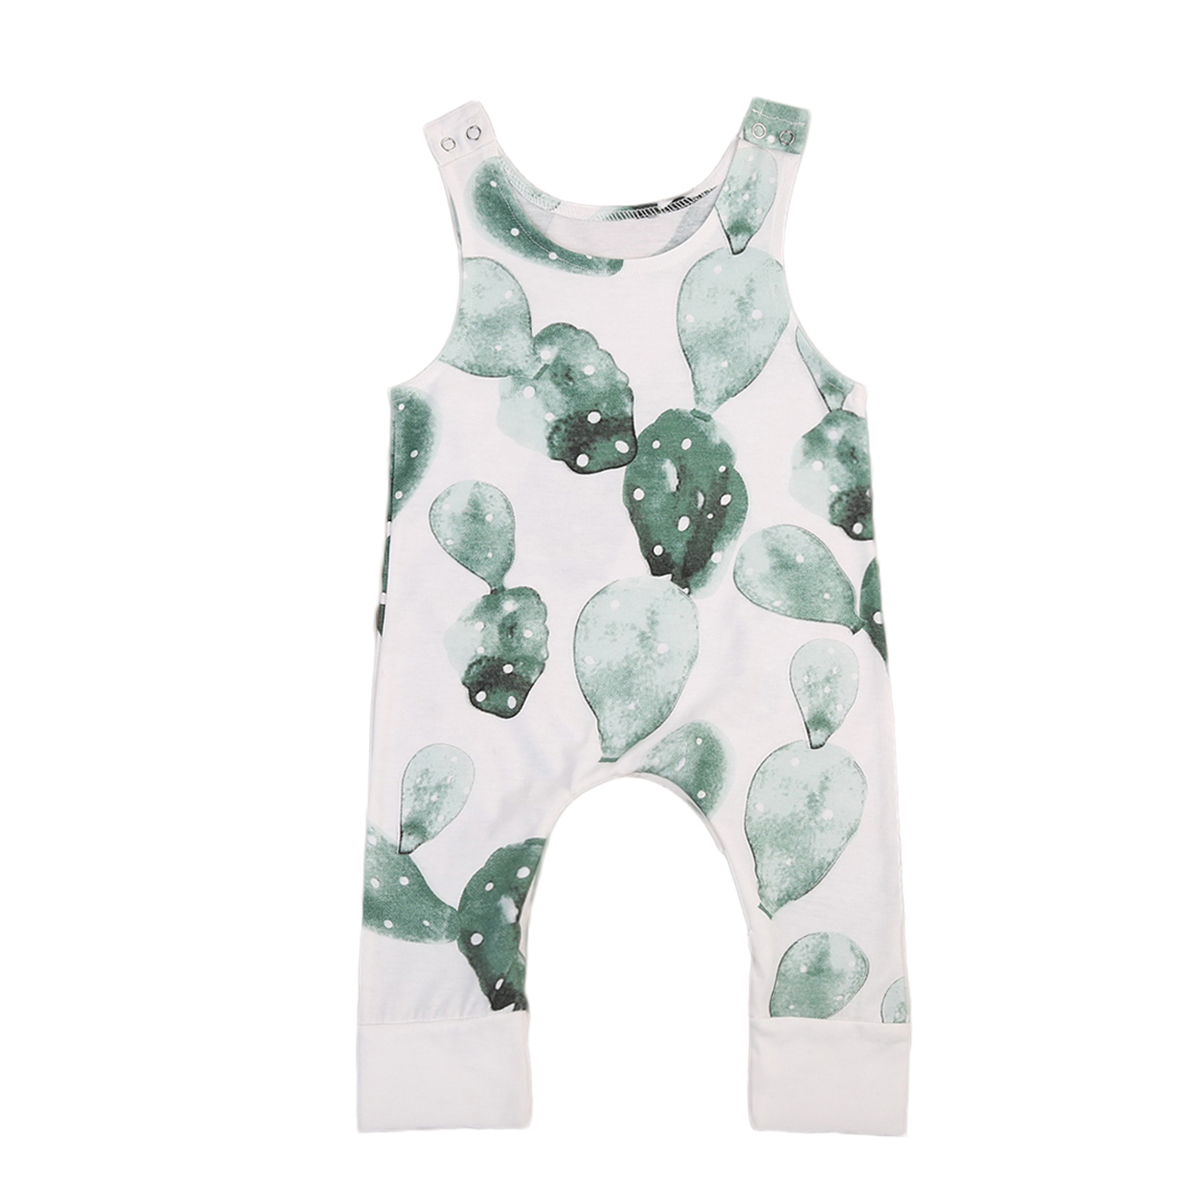 Cute Infant Baby Girl Boy Cactus Romper Jumpsuit Outfit Playsuit Clothing Toddler Boys Girls Print Rompers Casual newborn infant baby romper cute rabbit new born jumpsuit clothing girl boy baby bear clothes toddler romper costumes